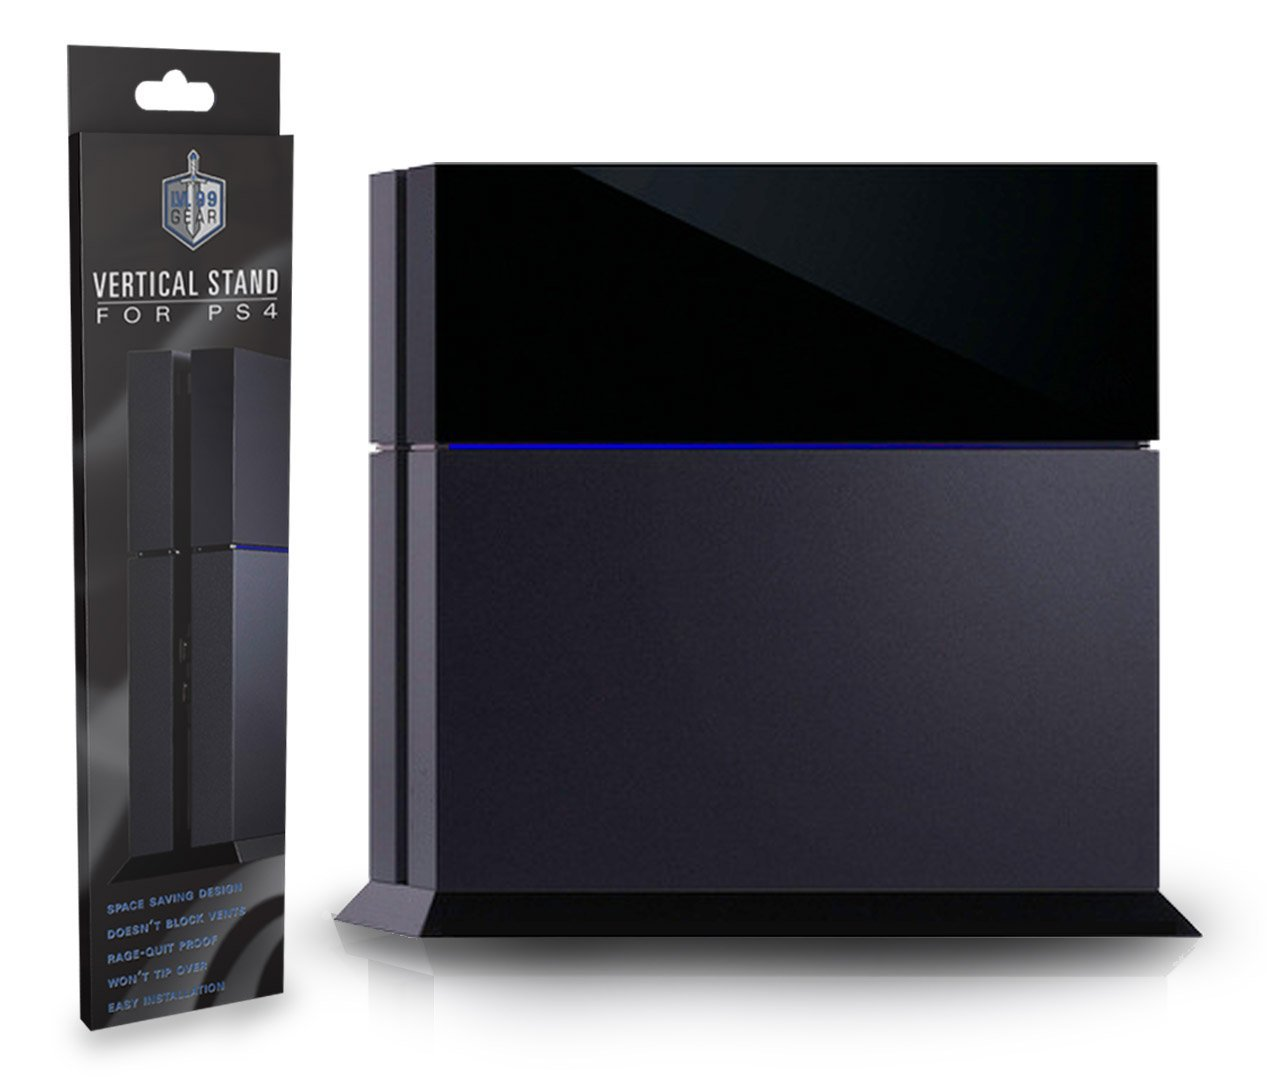 lvl 99 gear ps4 console vertical stand